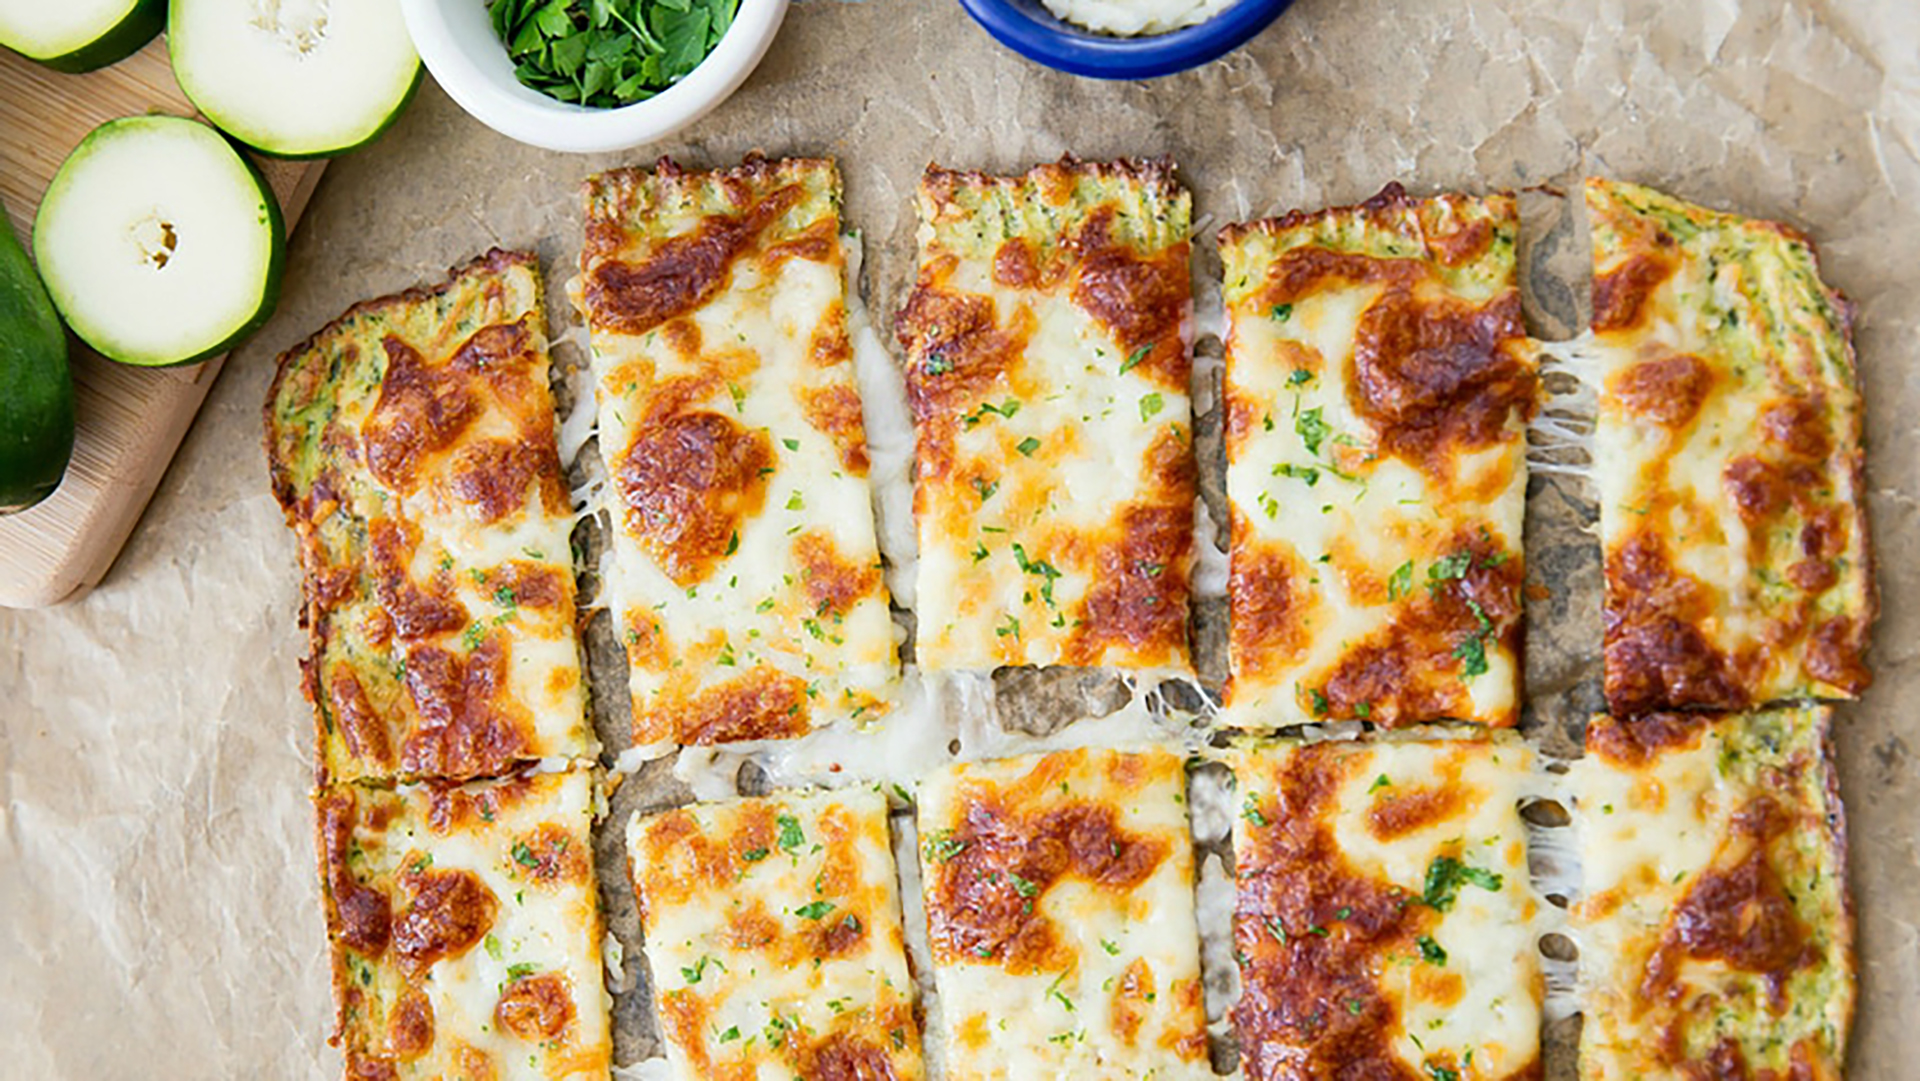 17 Delicious Vegetable Dishes That Are Mostly Just Cheese